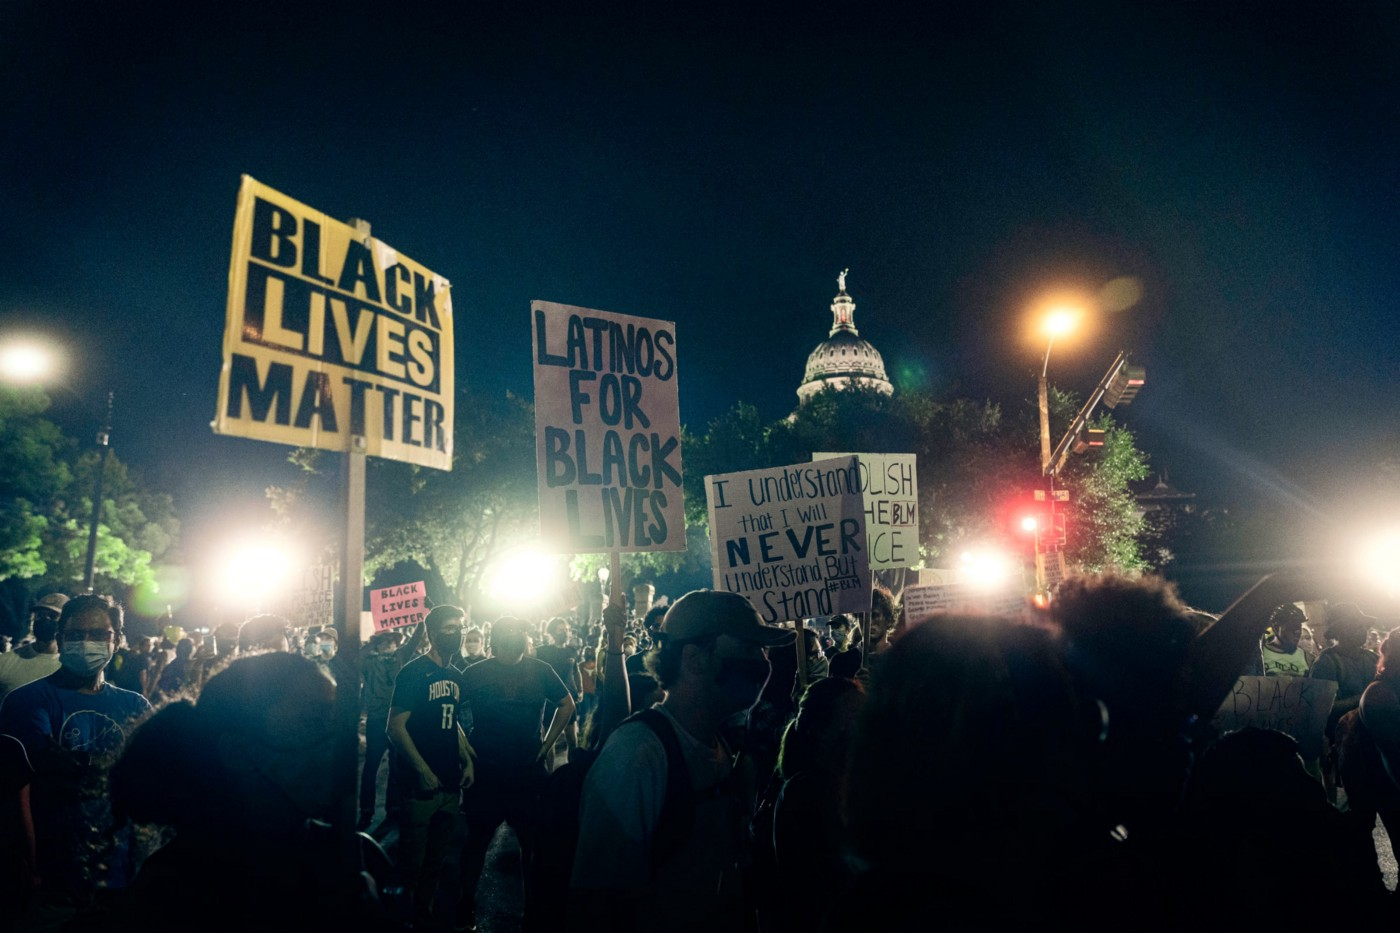 Photo taken at night of a group of Black Lives Matter protesters peacefully protesting